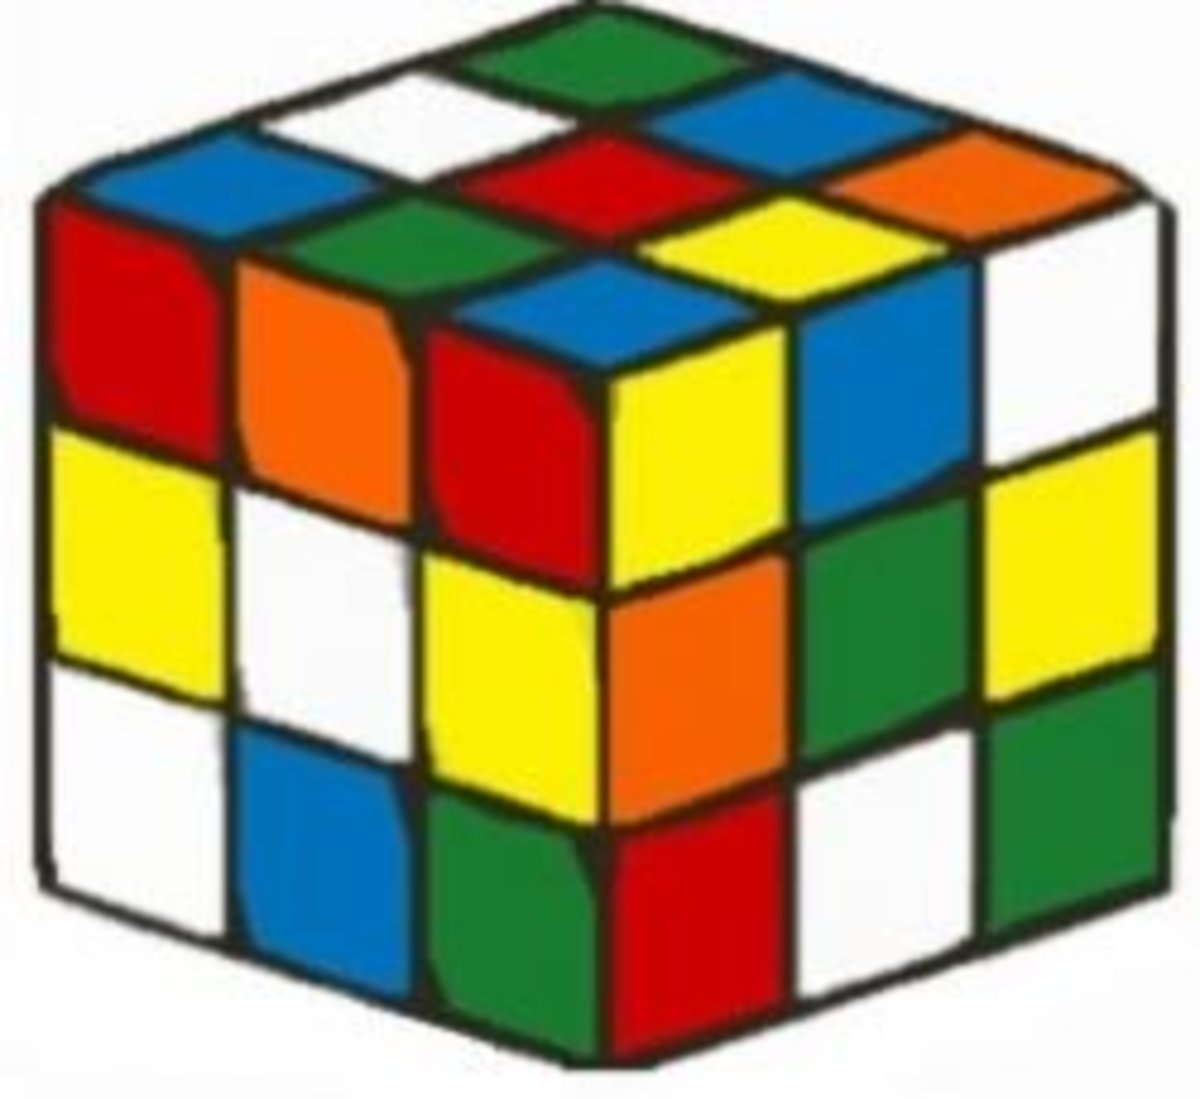 Learn how to solve a 3x3x3 Rubik's Cube in seven easy steps.